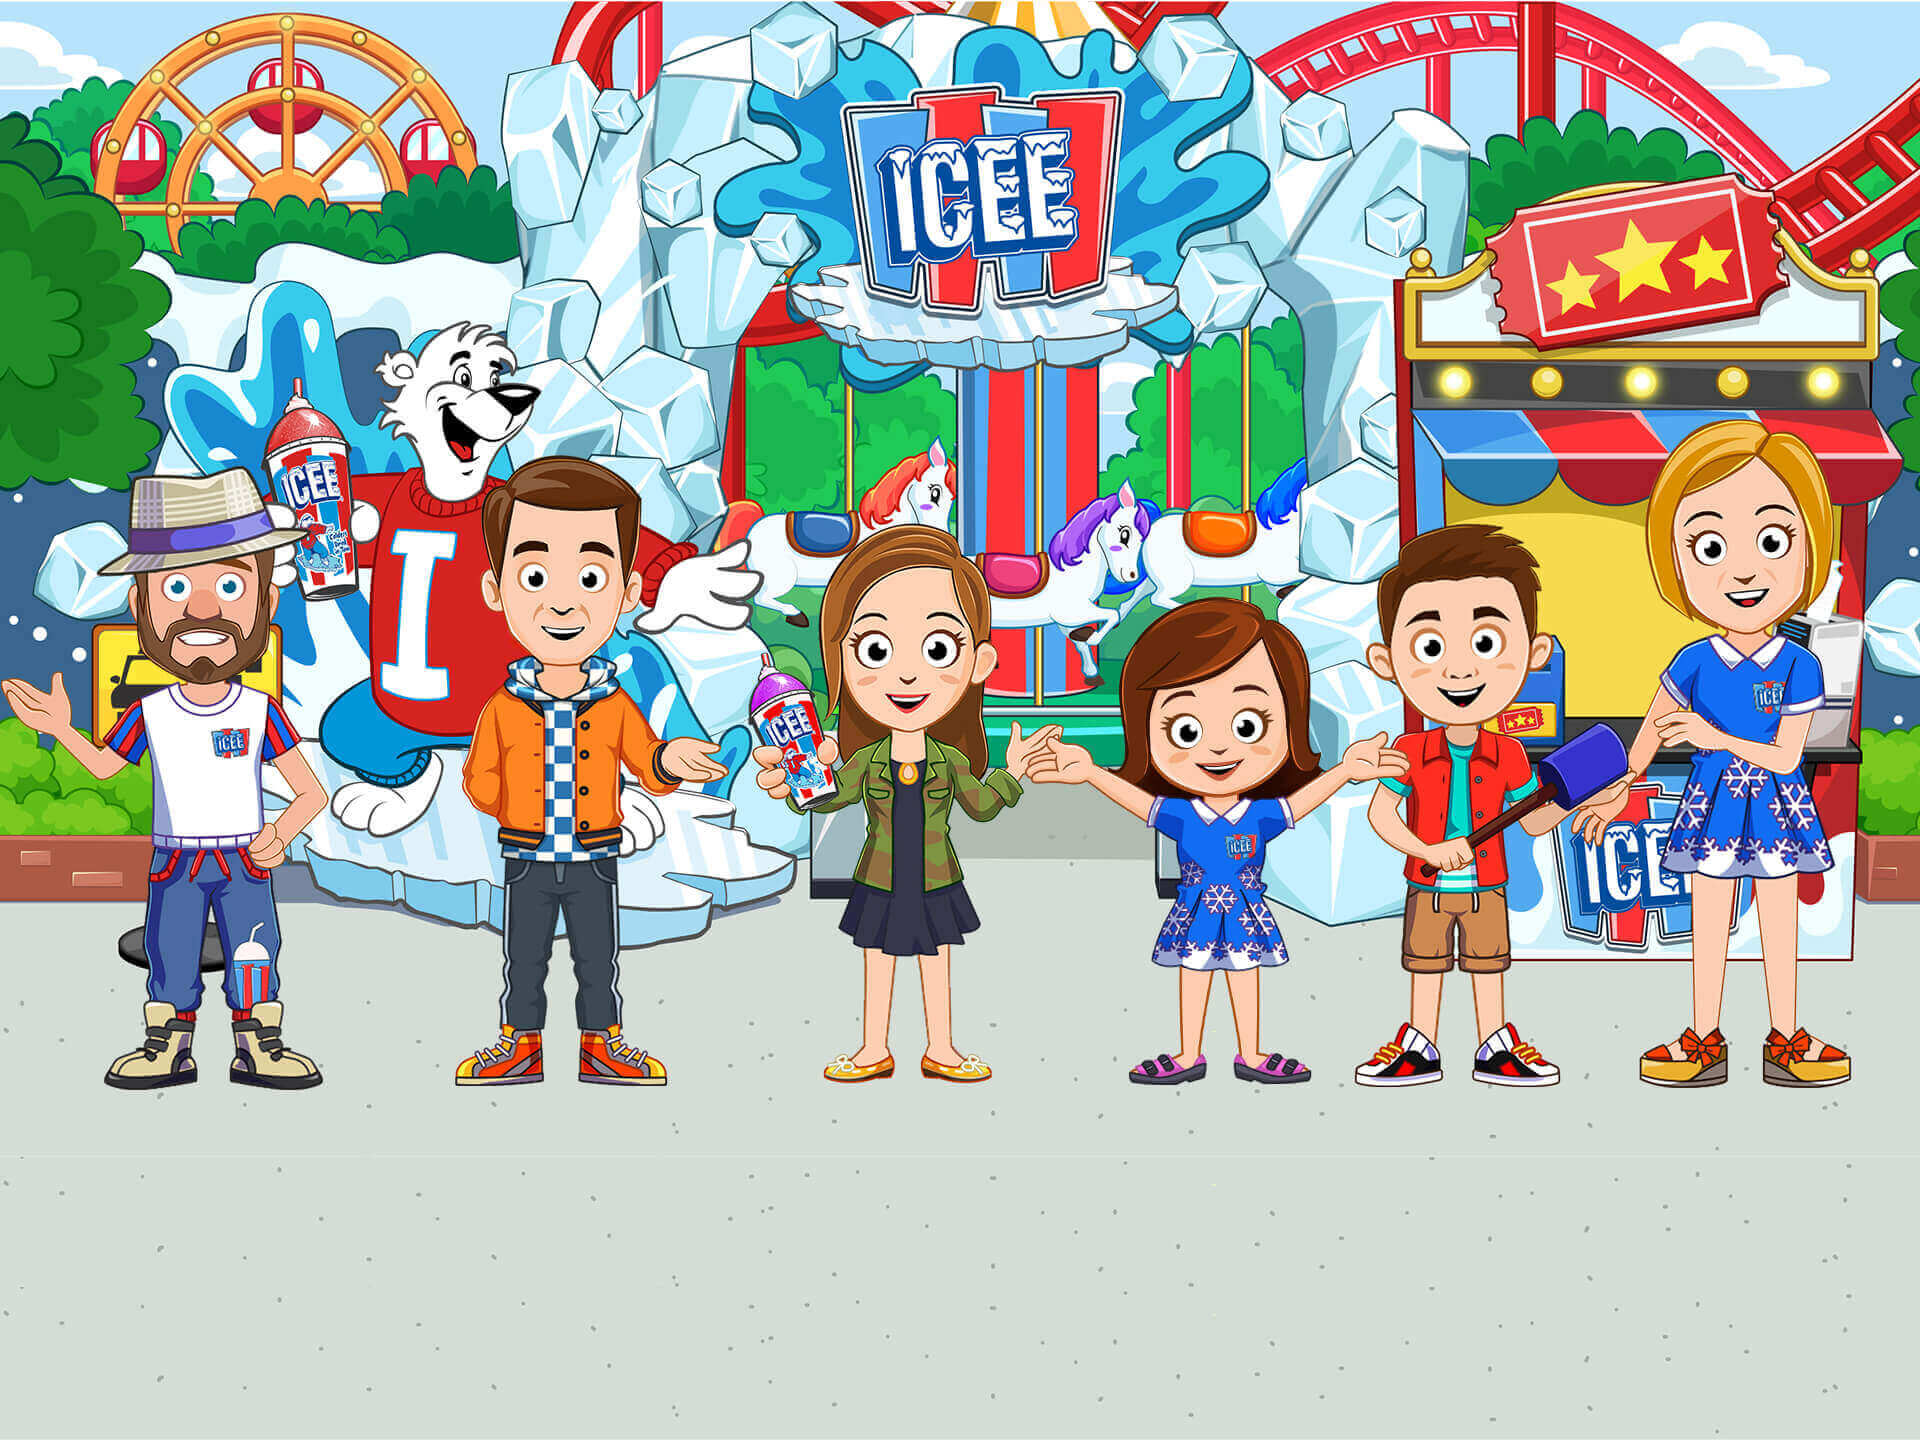 ICEE Amusement Park